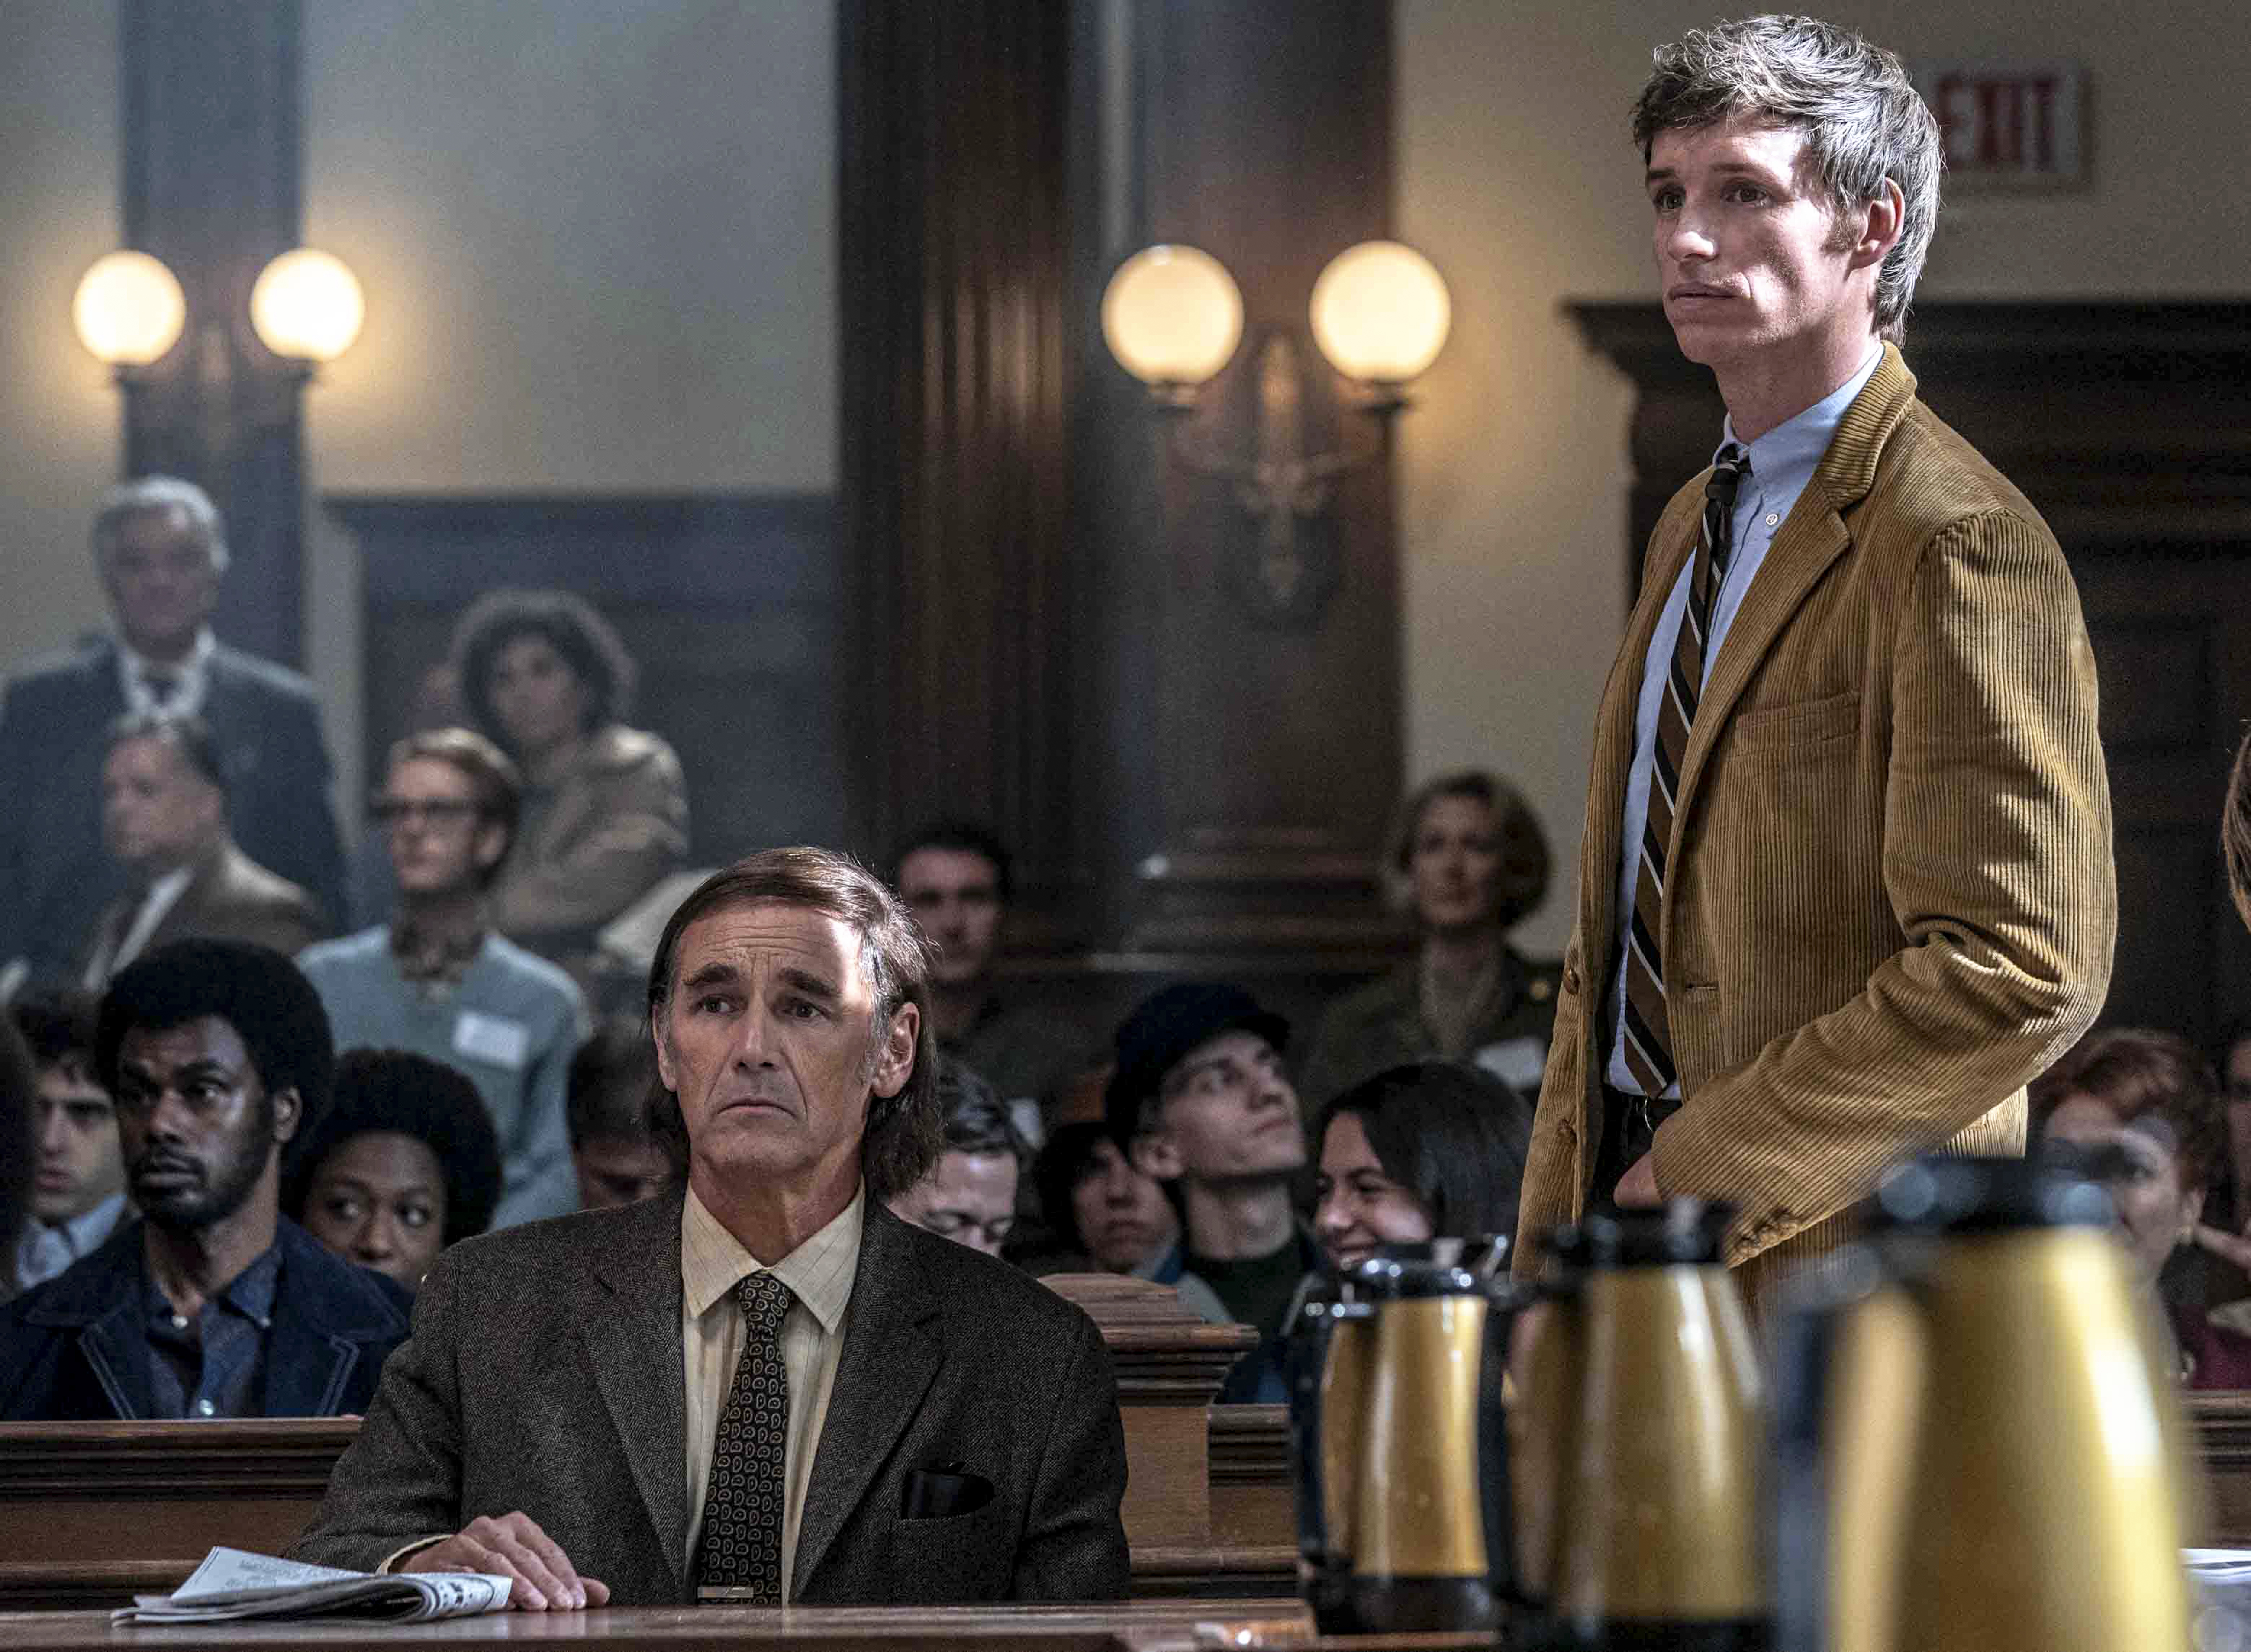 Mark Rylance as William Kunstler and Eddie Redmayne as Tom Hayden in The Trial of the Chicago 7